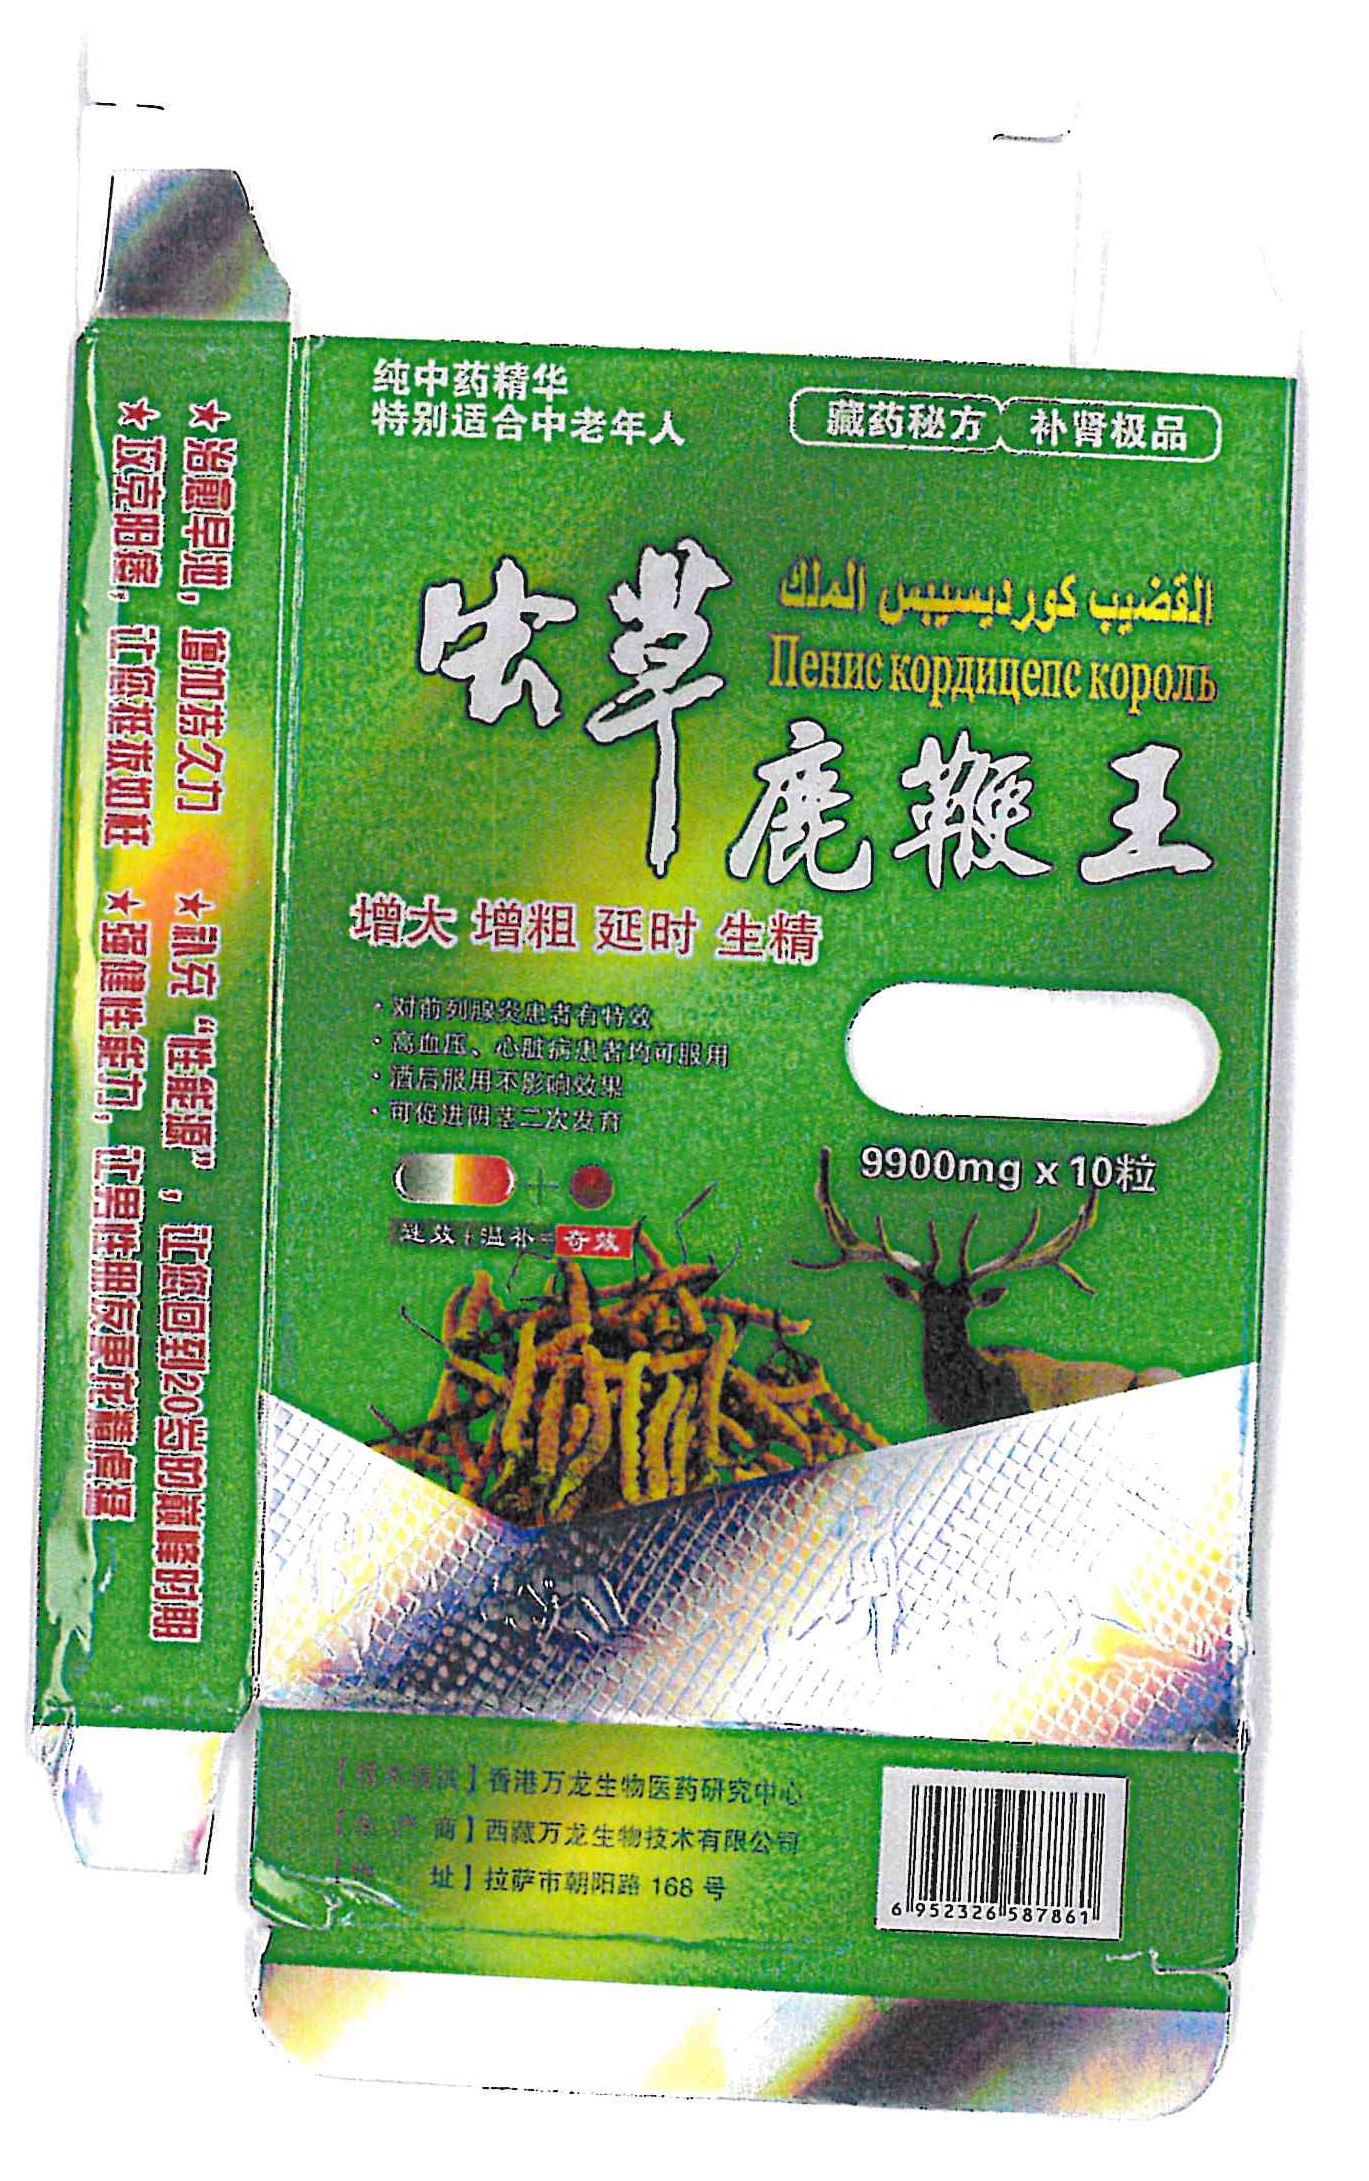 Image of the illigal product: Cordyceps King Penis